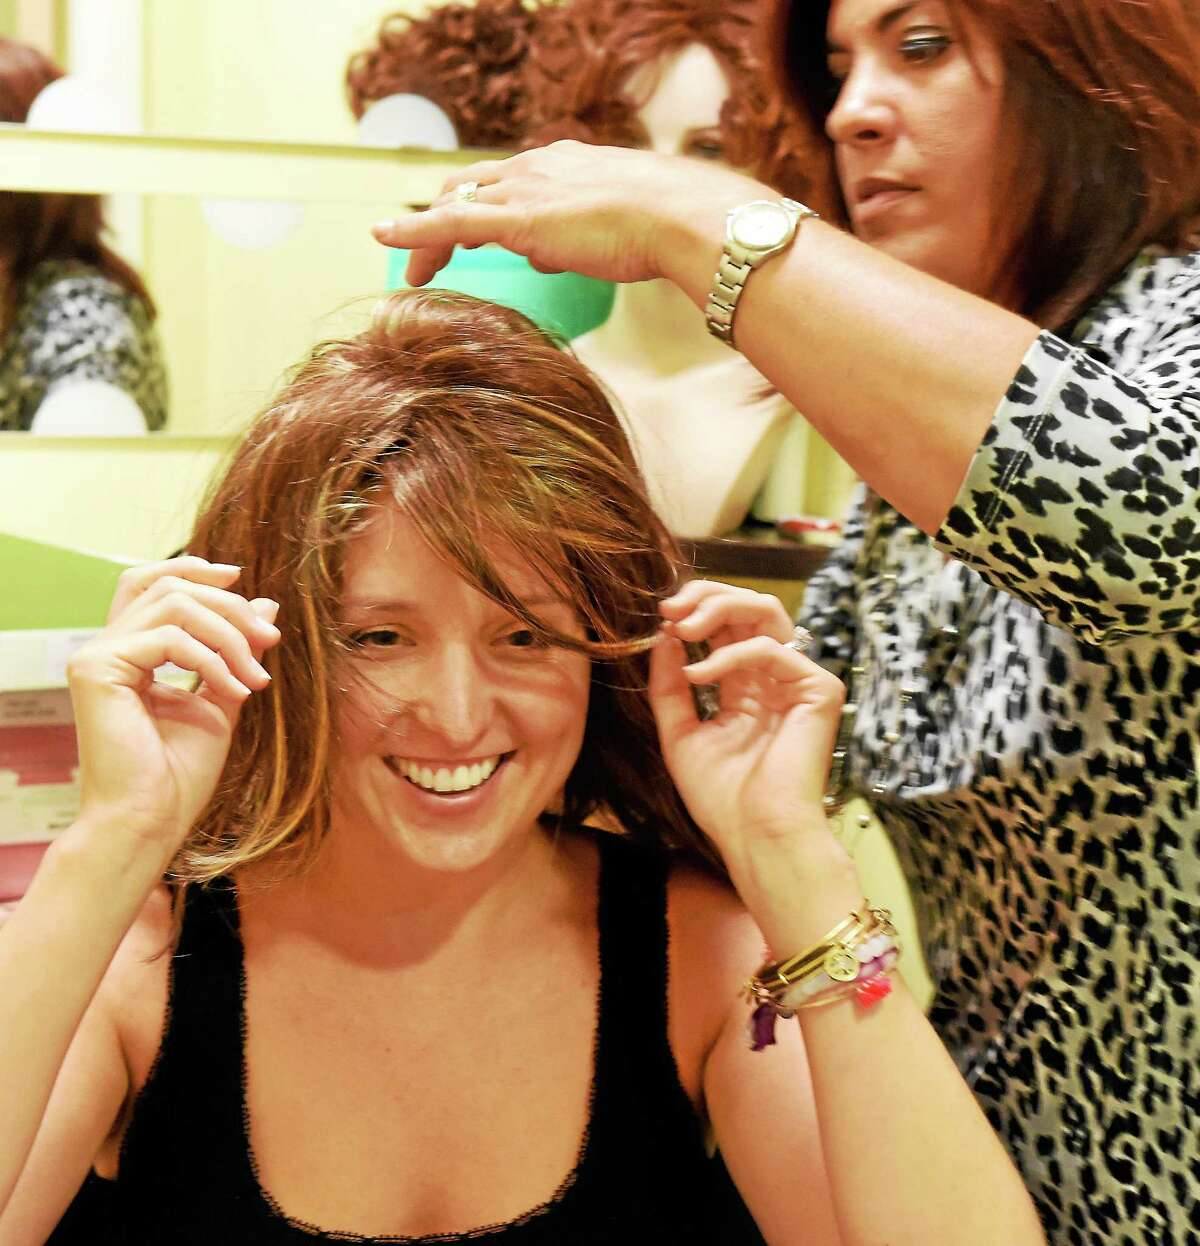 Andrea M. Torre of Wallingford, a licensed cosmetologist and certified wig specialist at the Smilow Cancer Hospital at Yale-New Haven in the Cingari Family Boutique, provides a wig consultation and fitting to cancer patient Ana Griffin of Fairfield, as she tried, and was fitted for, various styles of wigs by Torre Tuesday, August 5, 2014